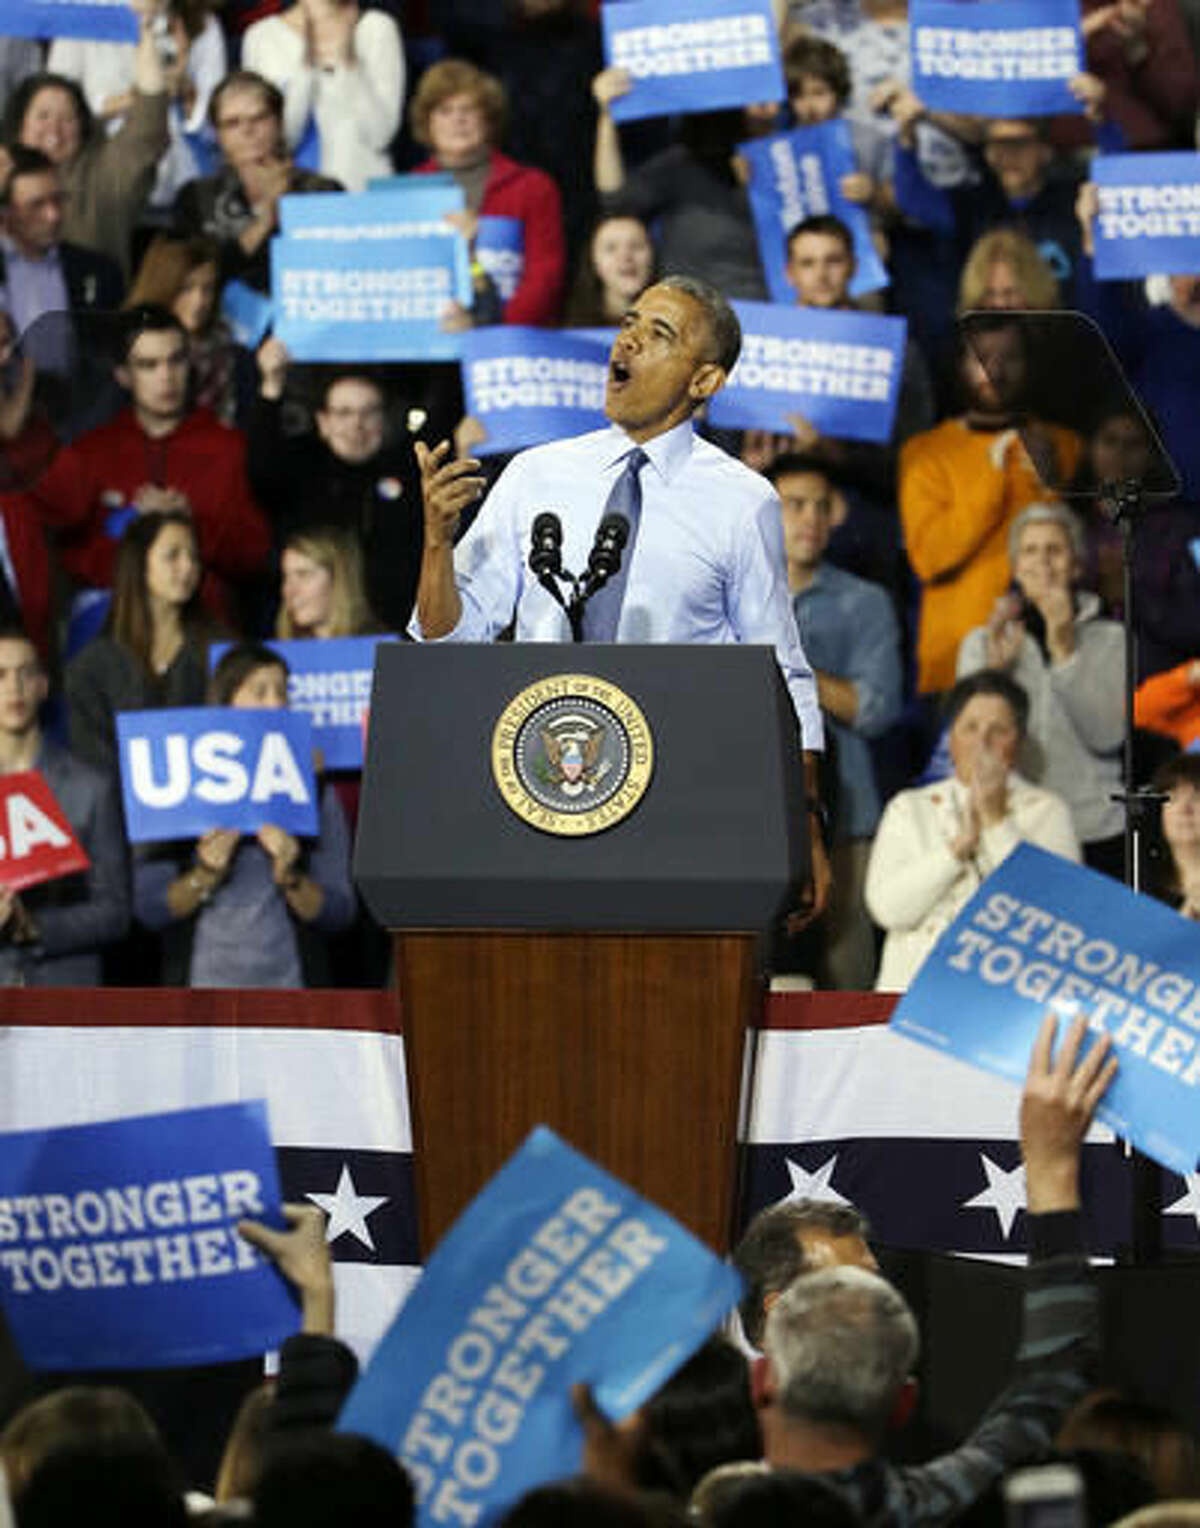 President Barack Obama speaks at a campaign event for Democratic presidential candidate Hillary Clinton at the University of New Hampshire, Monday, Nov. 7, 2016, in Durham, N.H. (AP Photo/Elise Amendola)